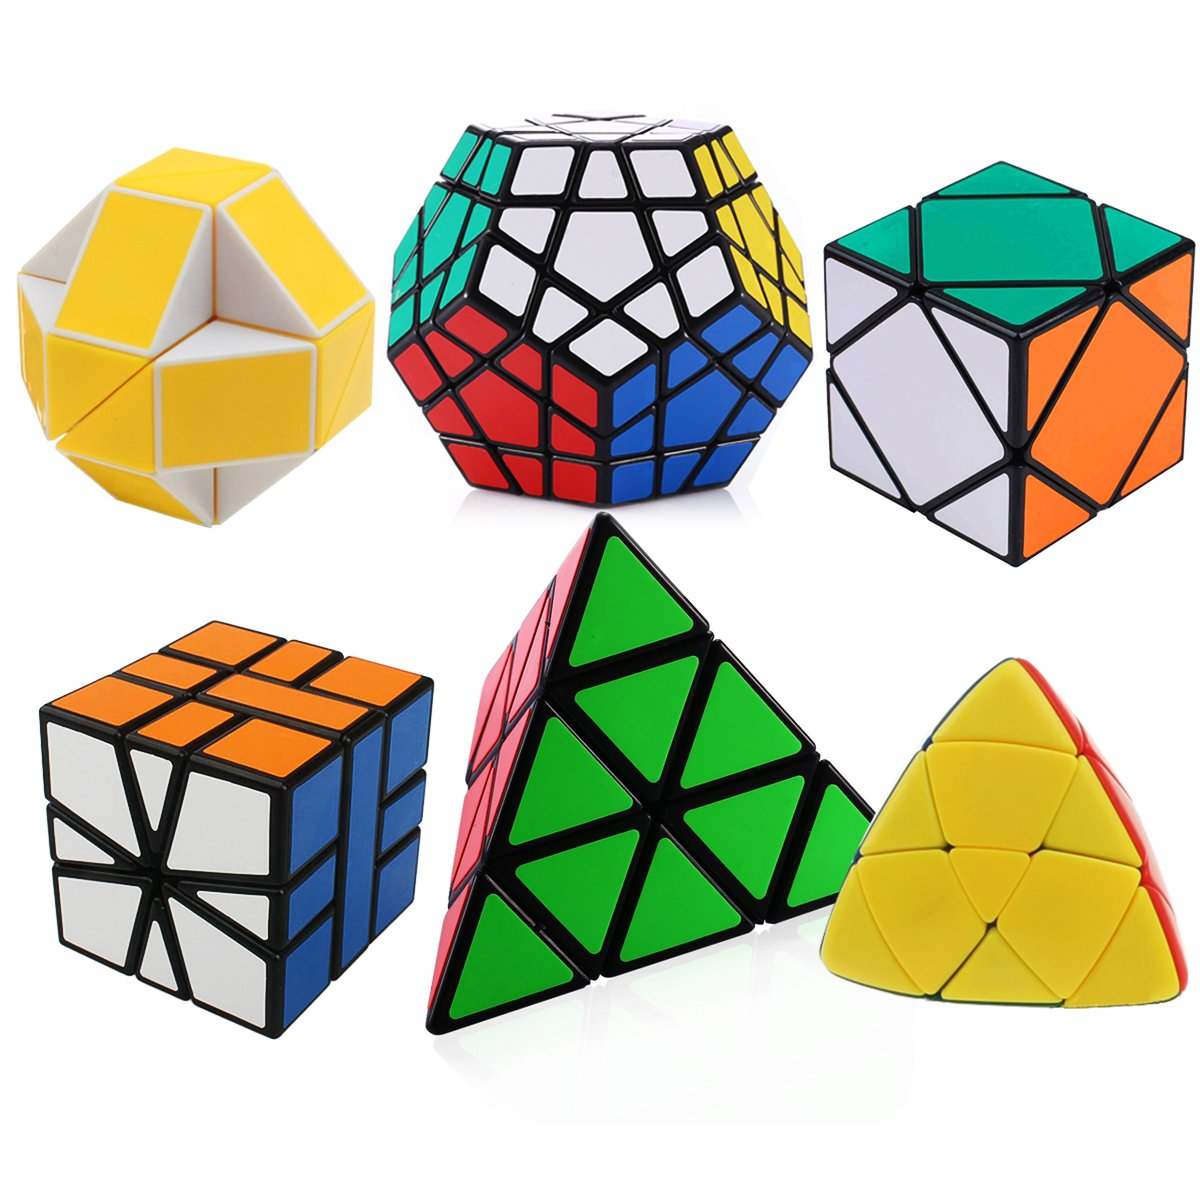 Dreampark Set of 6 Magic Speed Cube Pyraminx, Megaminx, Oblique, Mastermorphix, Square-1 SQ1 and Magic Snake Yellow and White Twisty Toy Puzzle - Perfect Gift Puzzle Box for Kids, teens, and adults